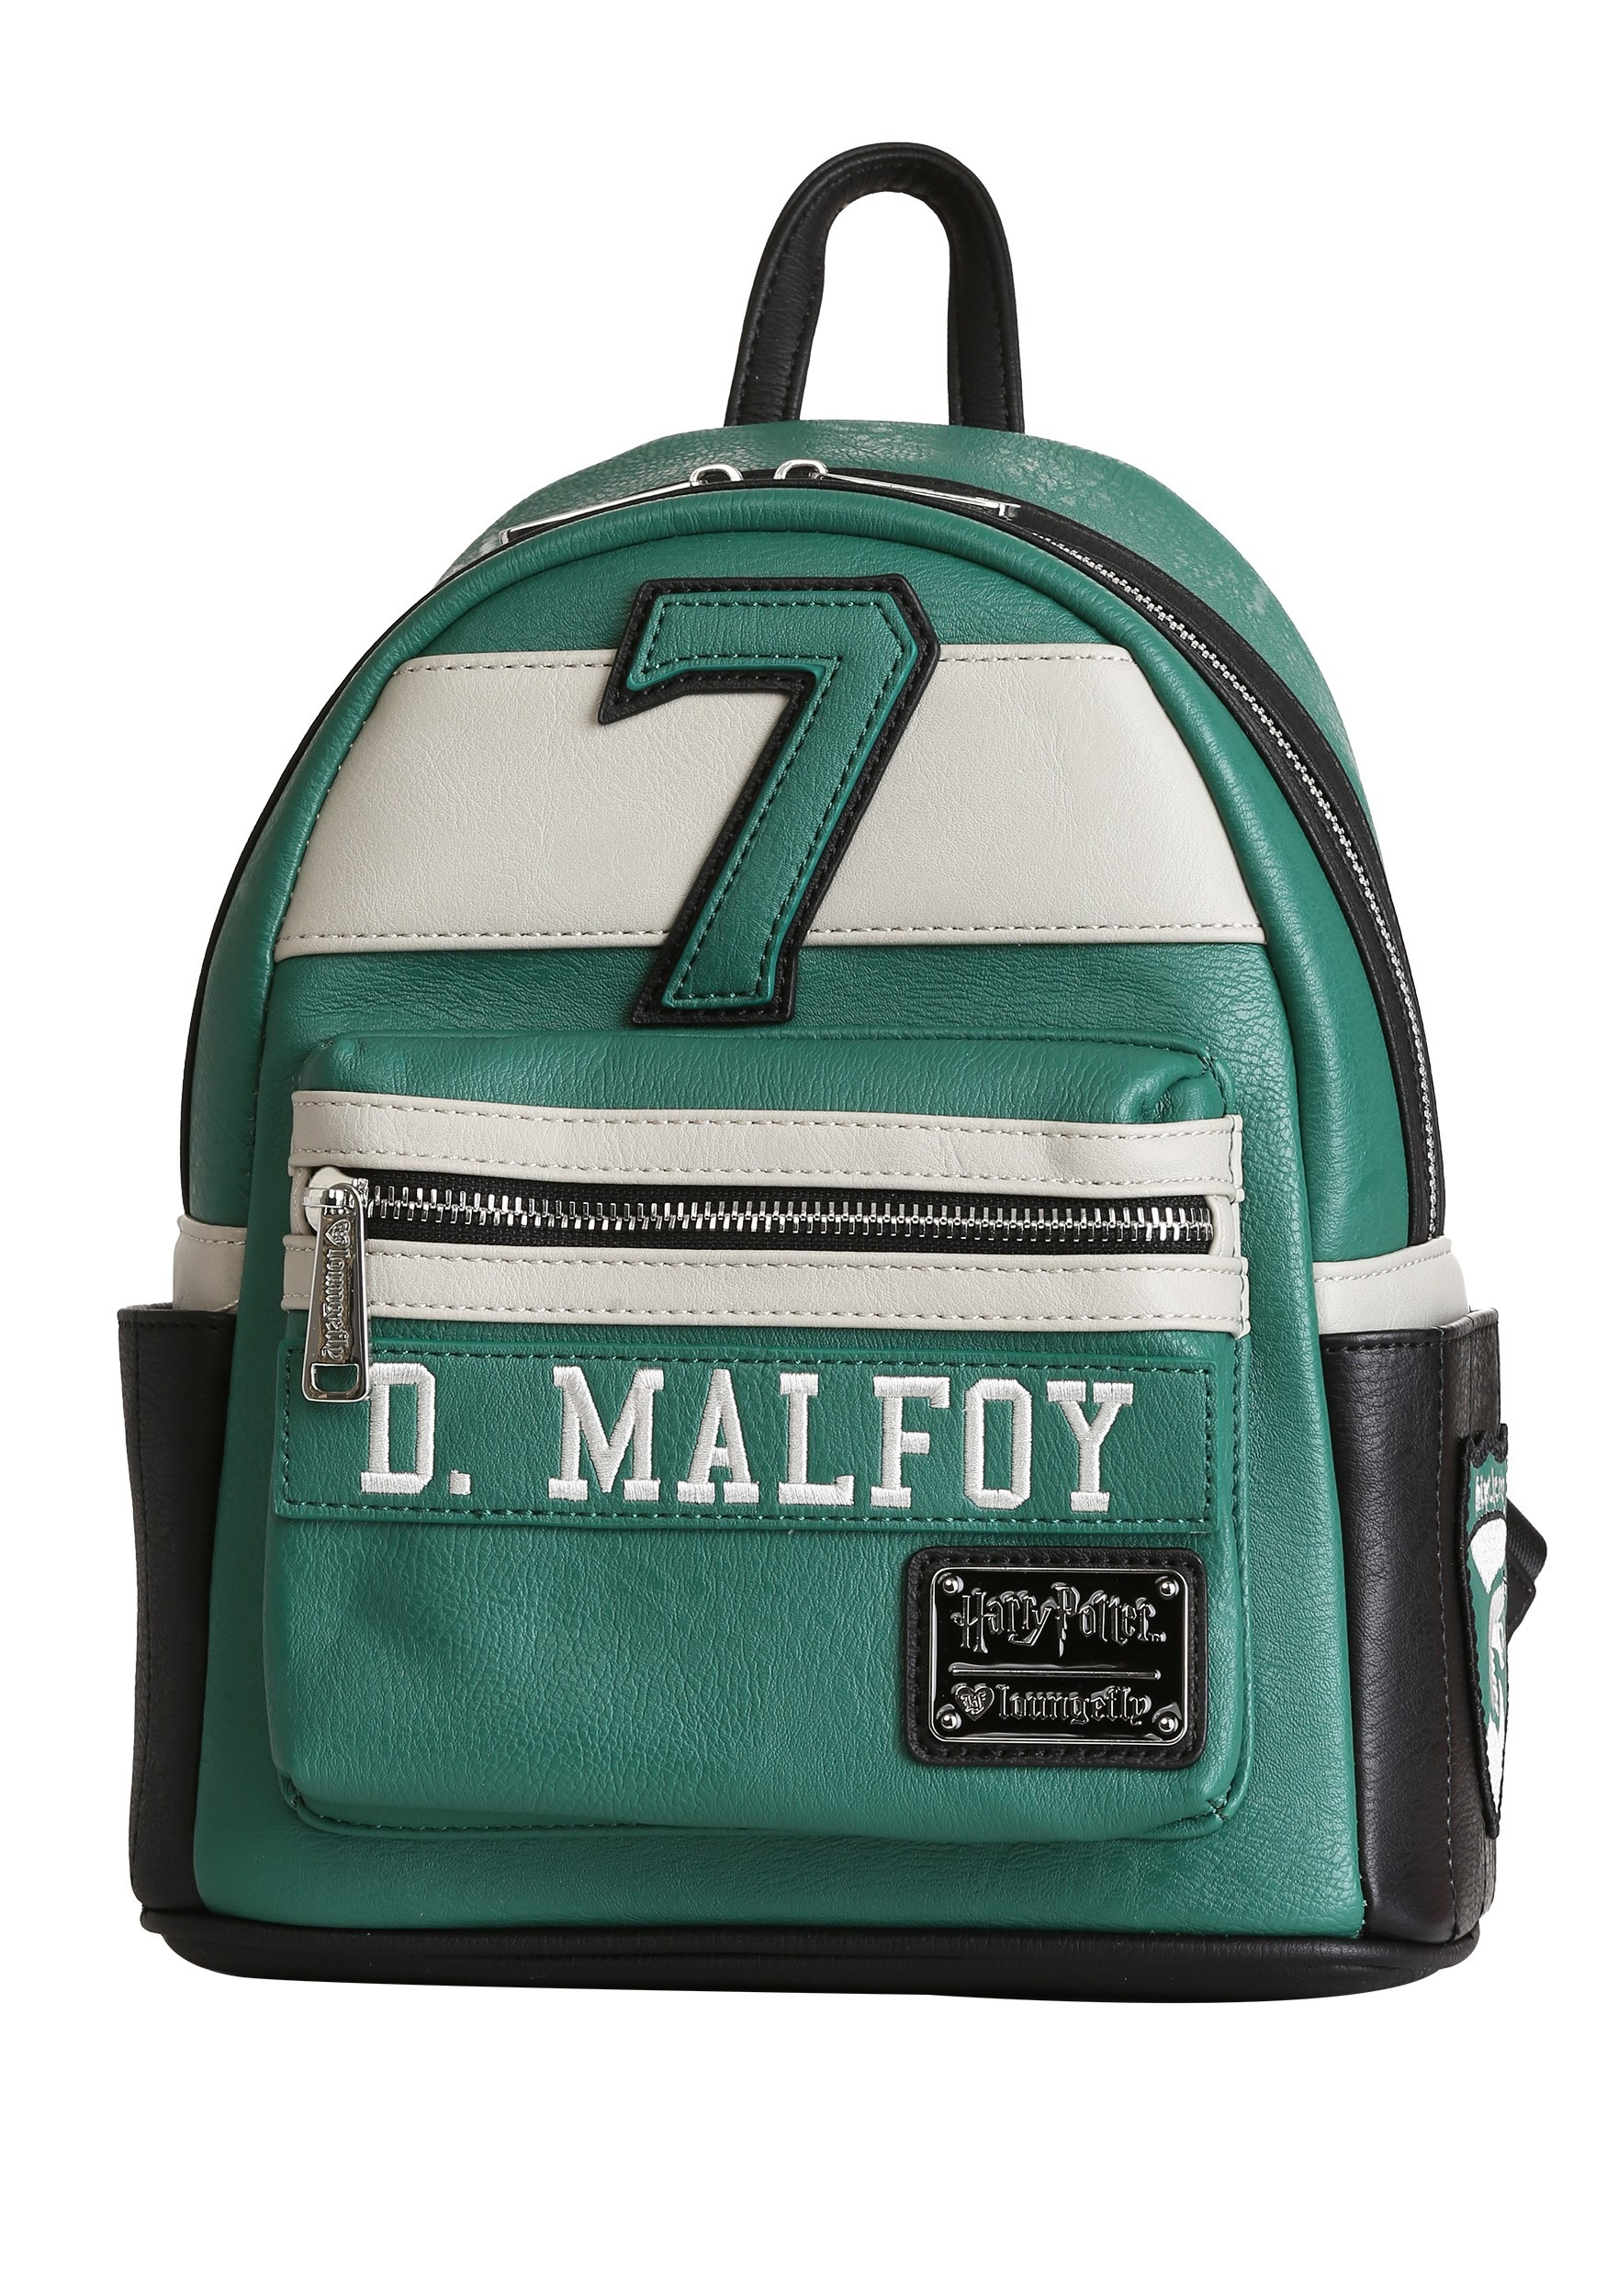 21ba9fddad9 Loungefly Harry Potter- Draco Malfoy  7 Quidditch Mini Backpack